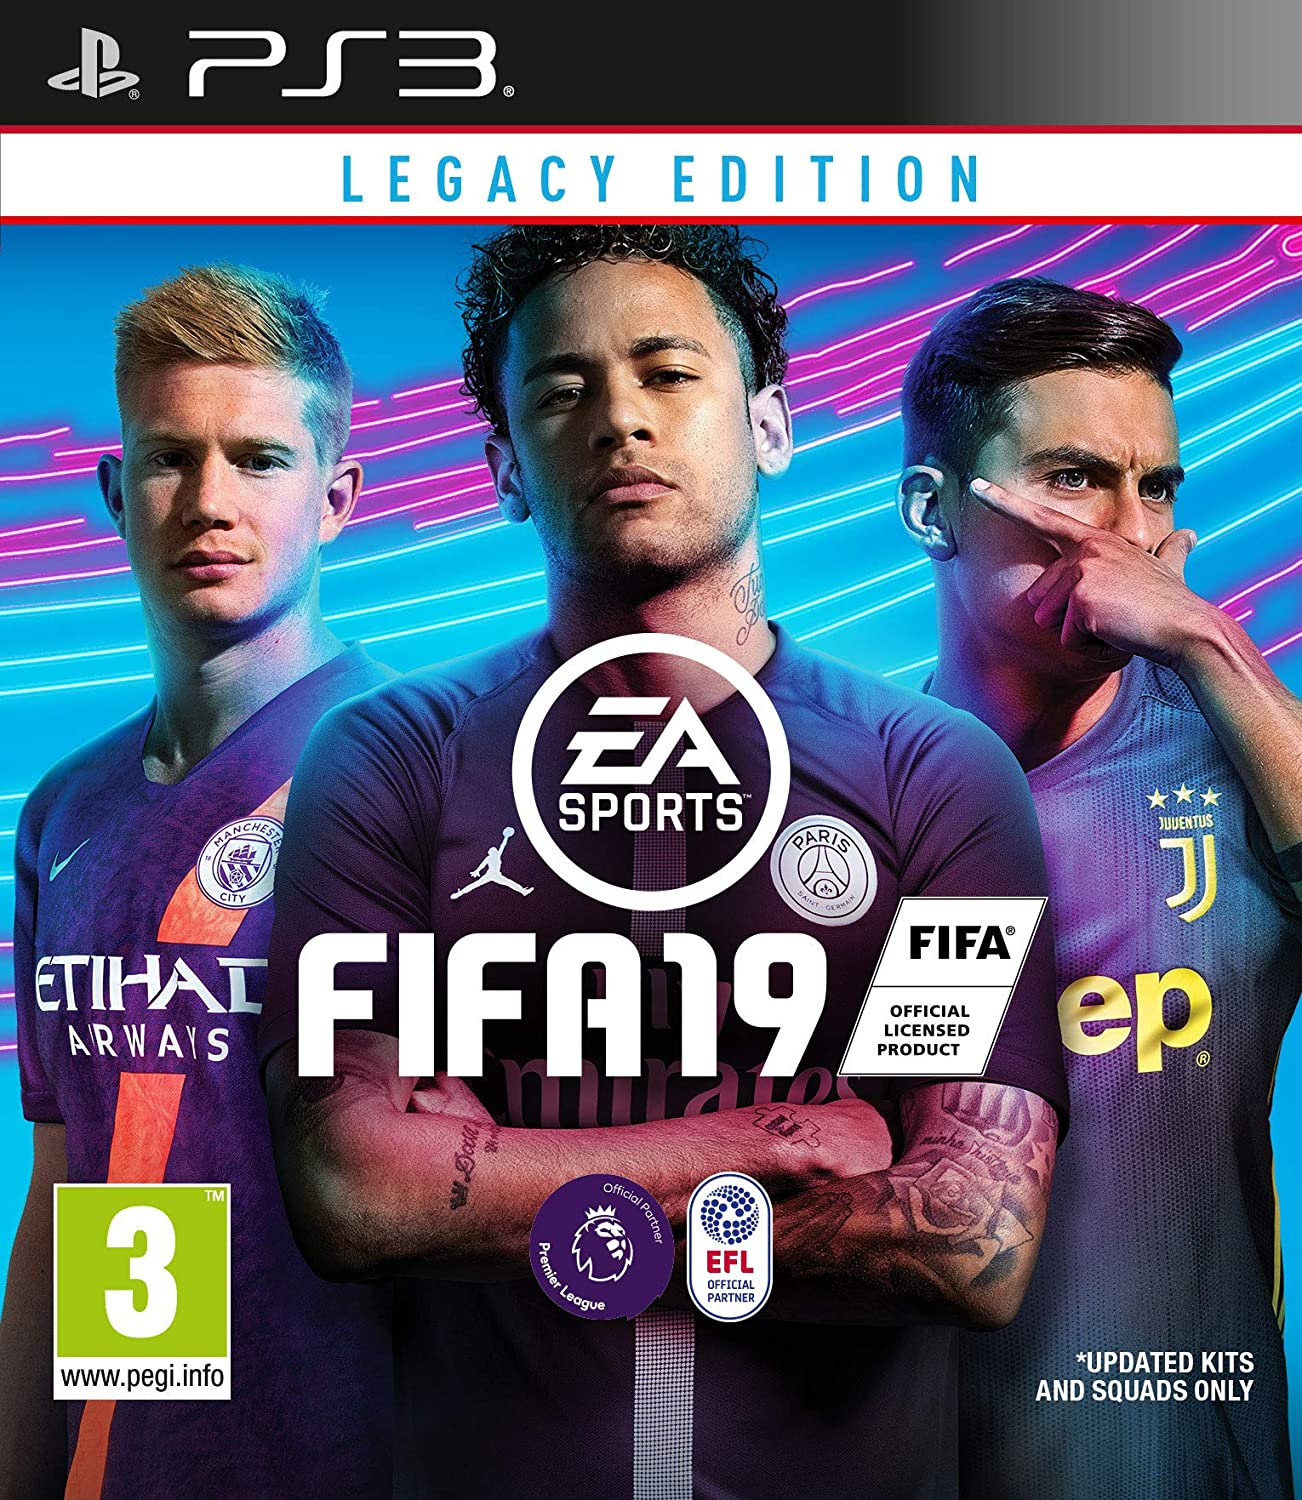 FIFA 19 Legacy Edition (PS3): Amazon co uk: PC & Video Games